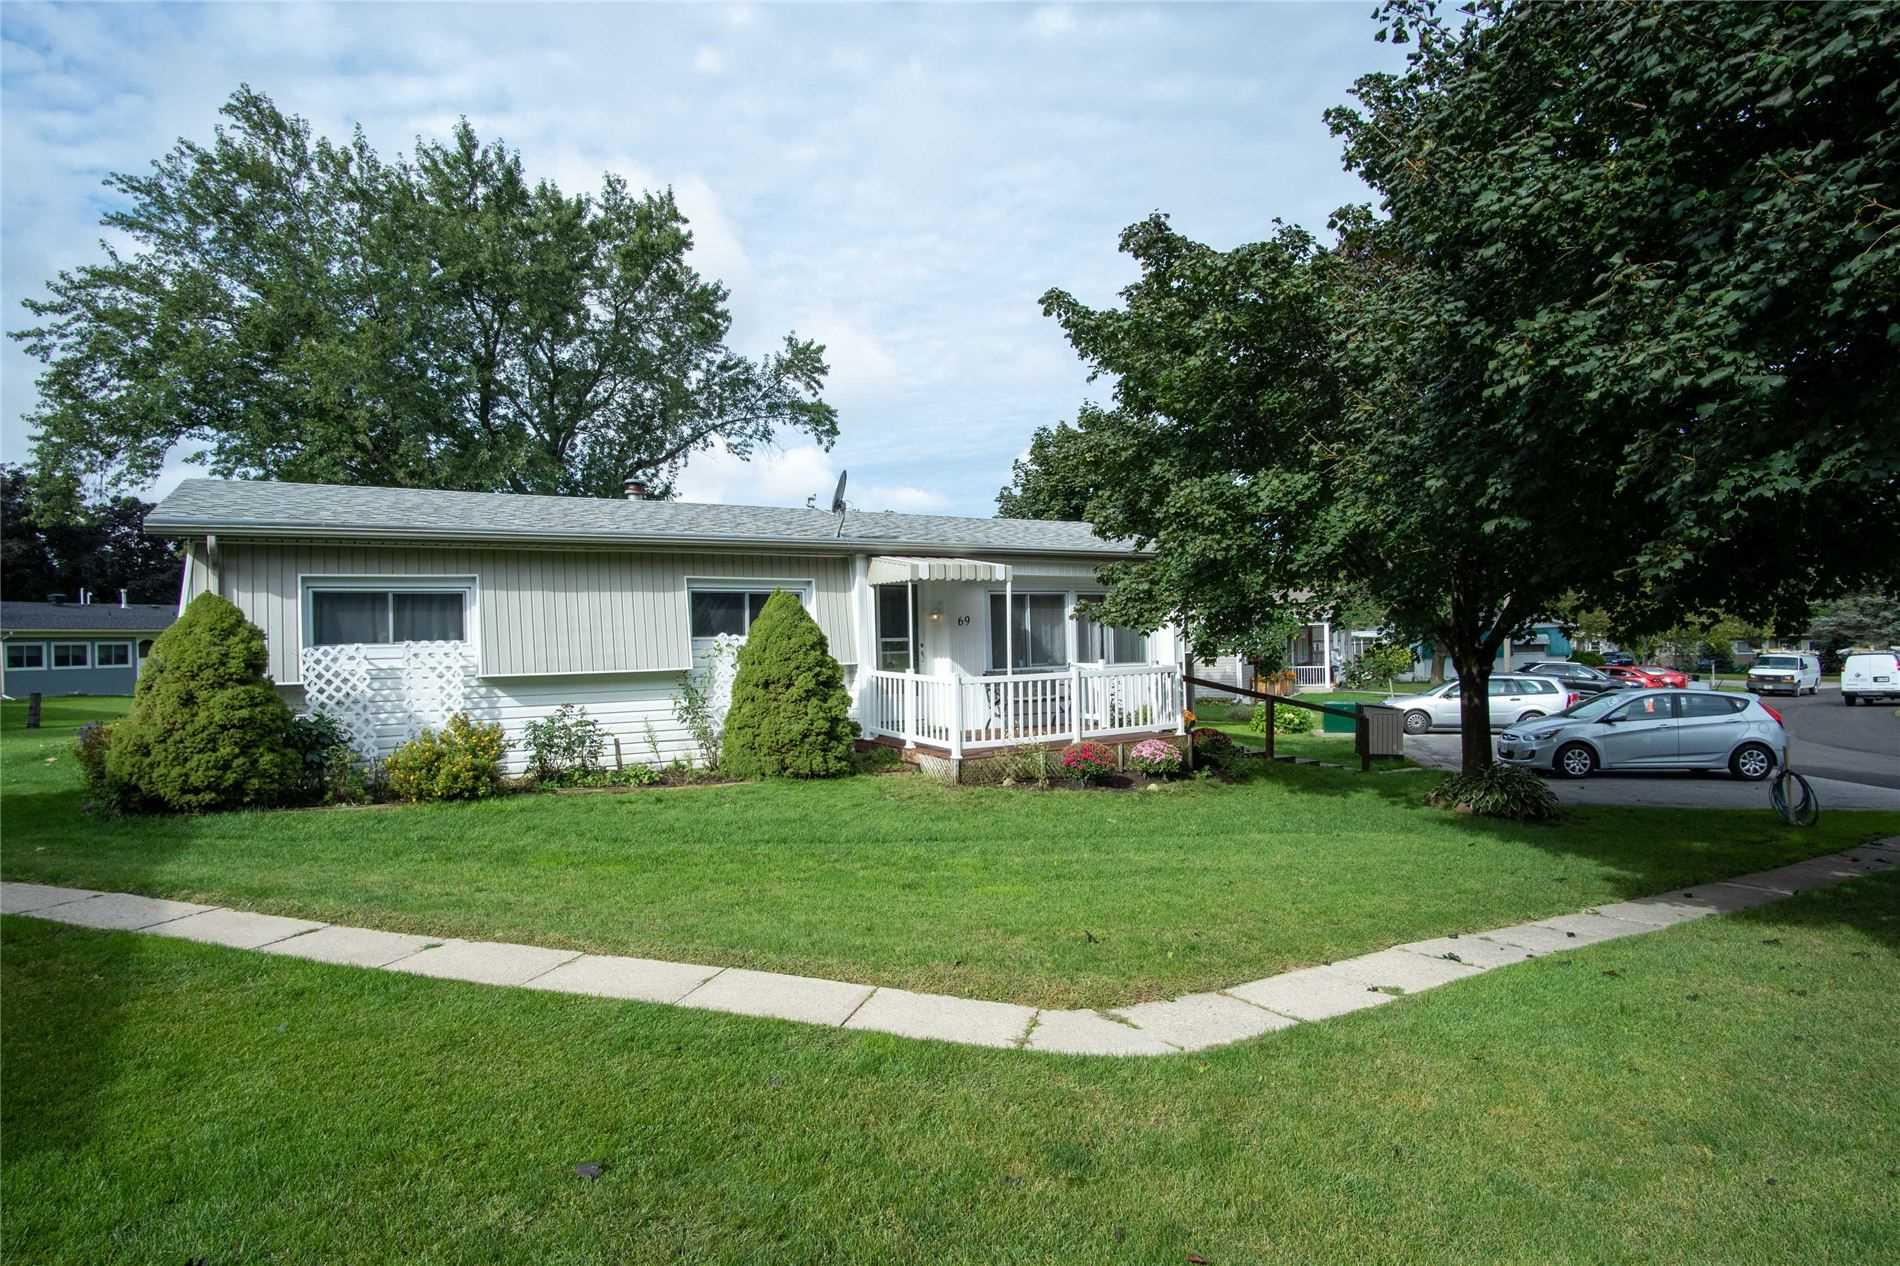 Detached house For Sale In Innisfil